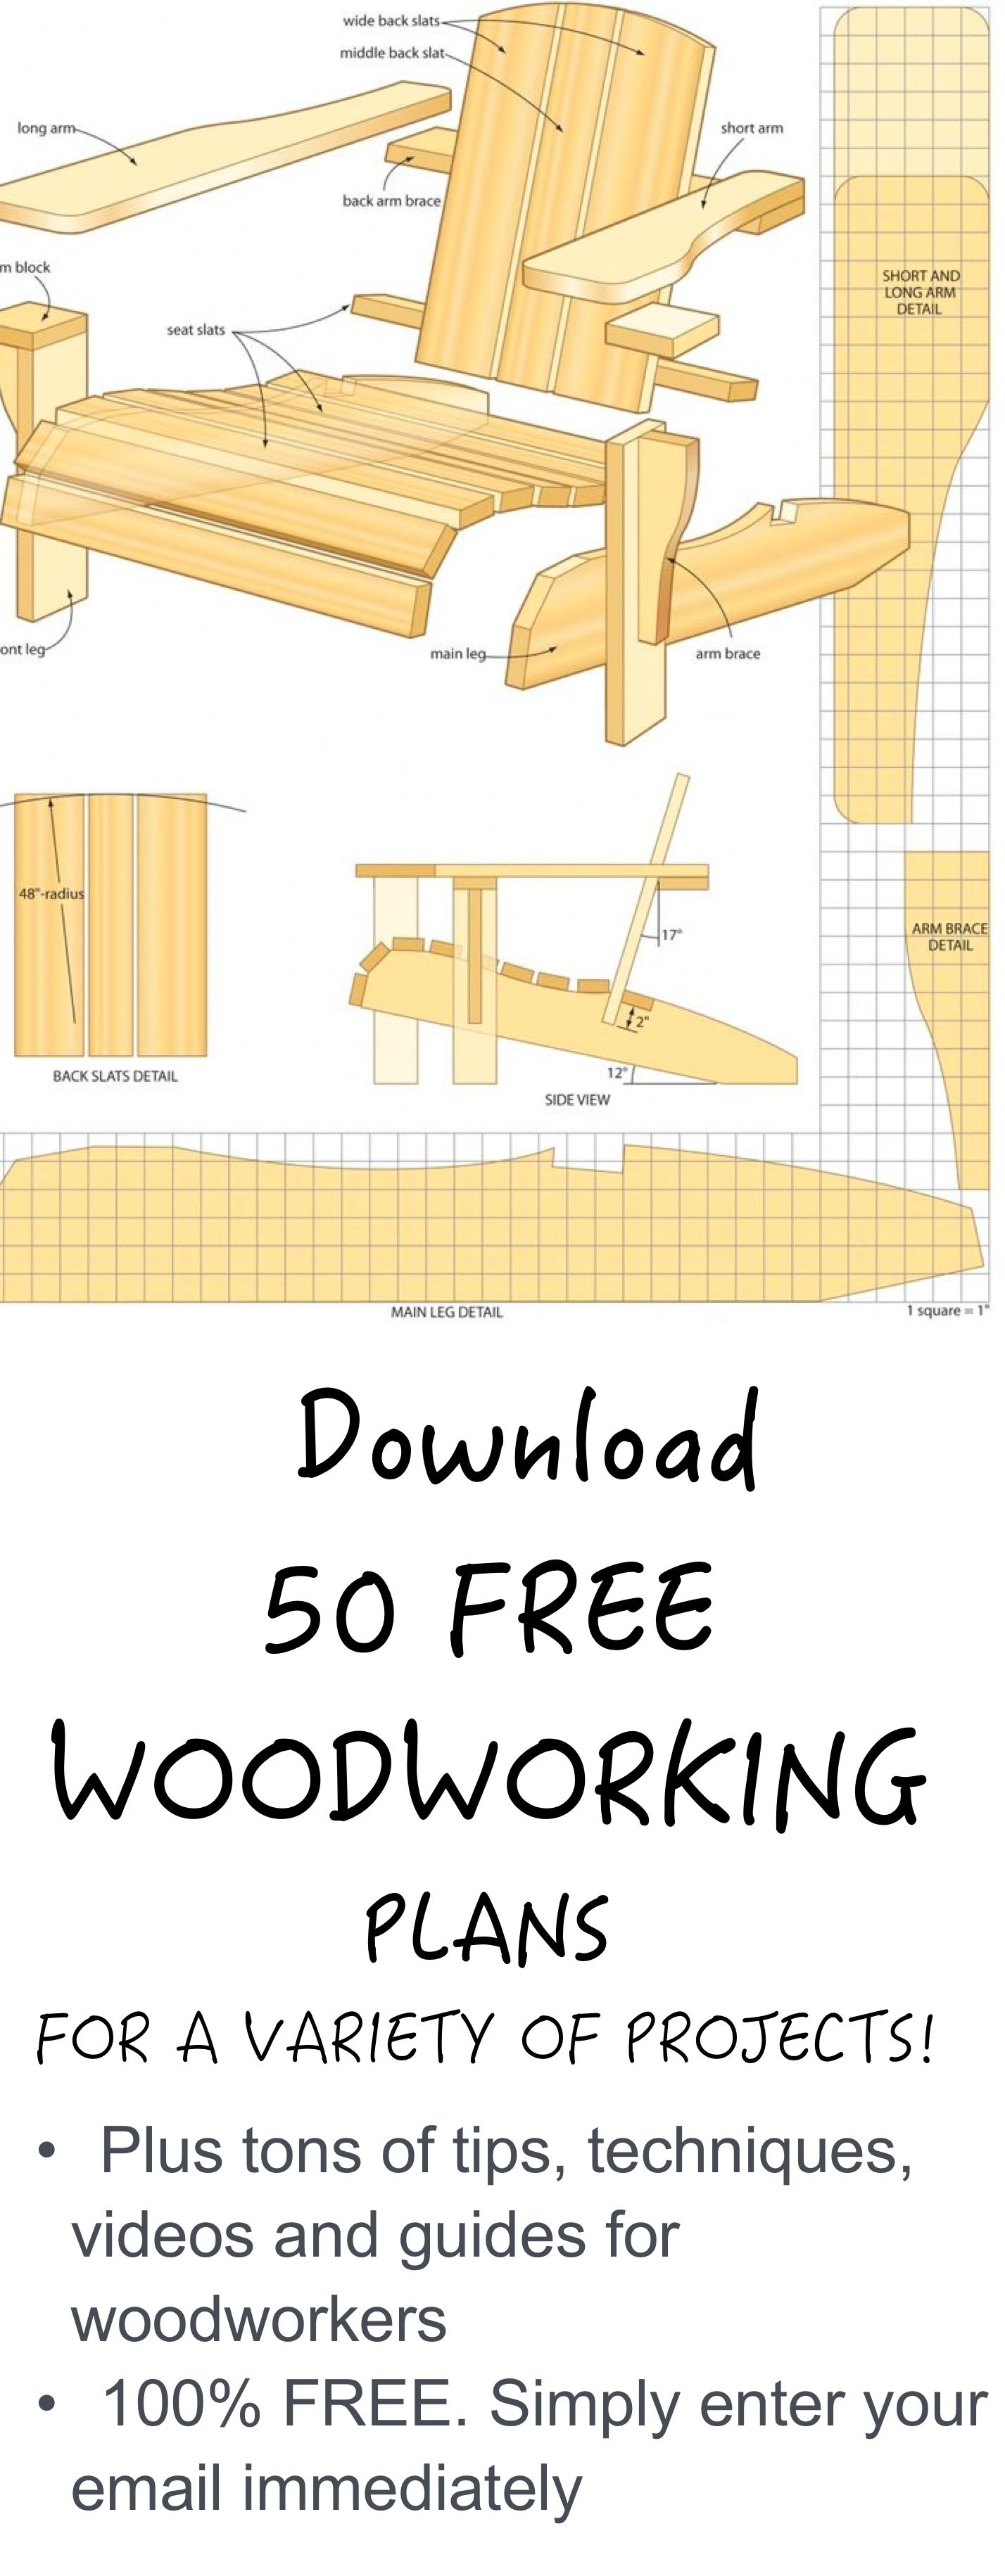 Ahorra Muebles Download Free Woodworking Plans Just Enter Your Email To